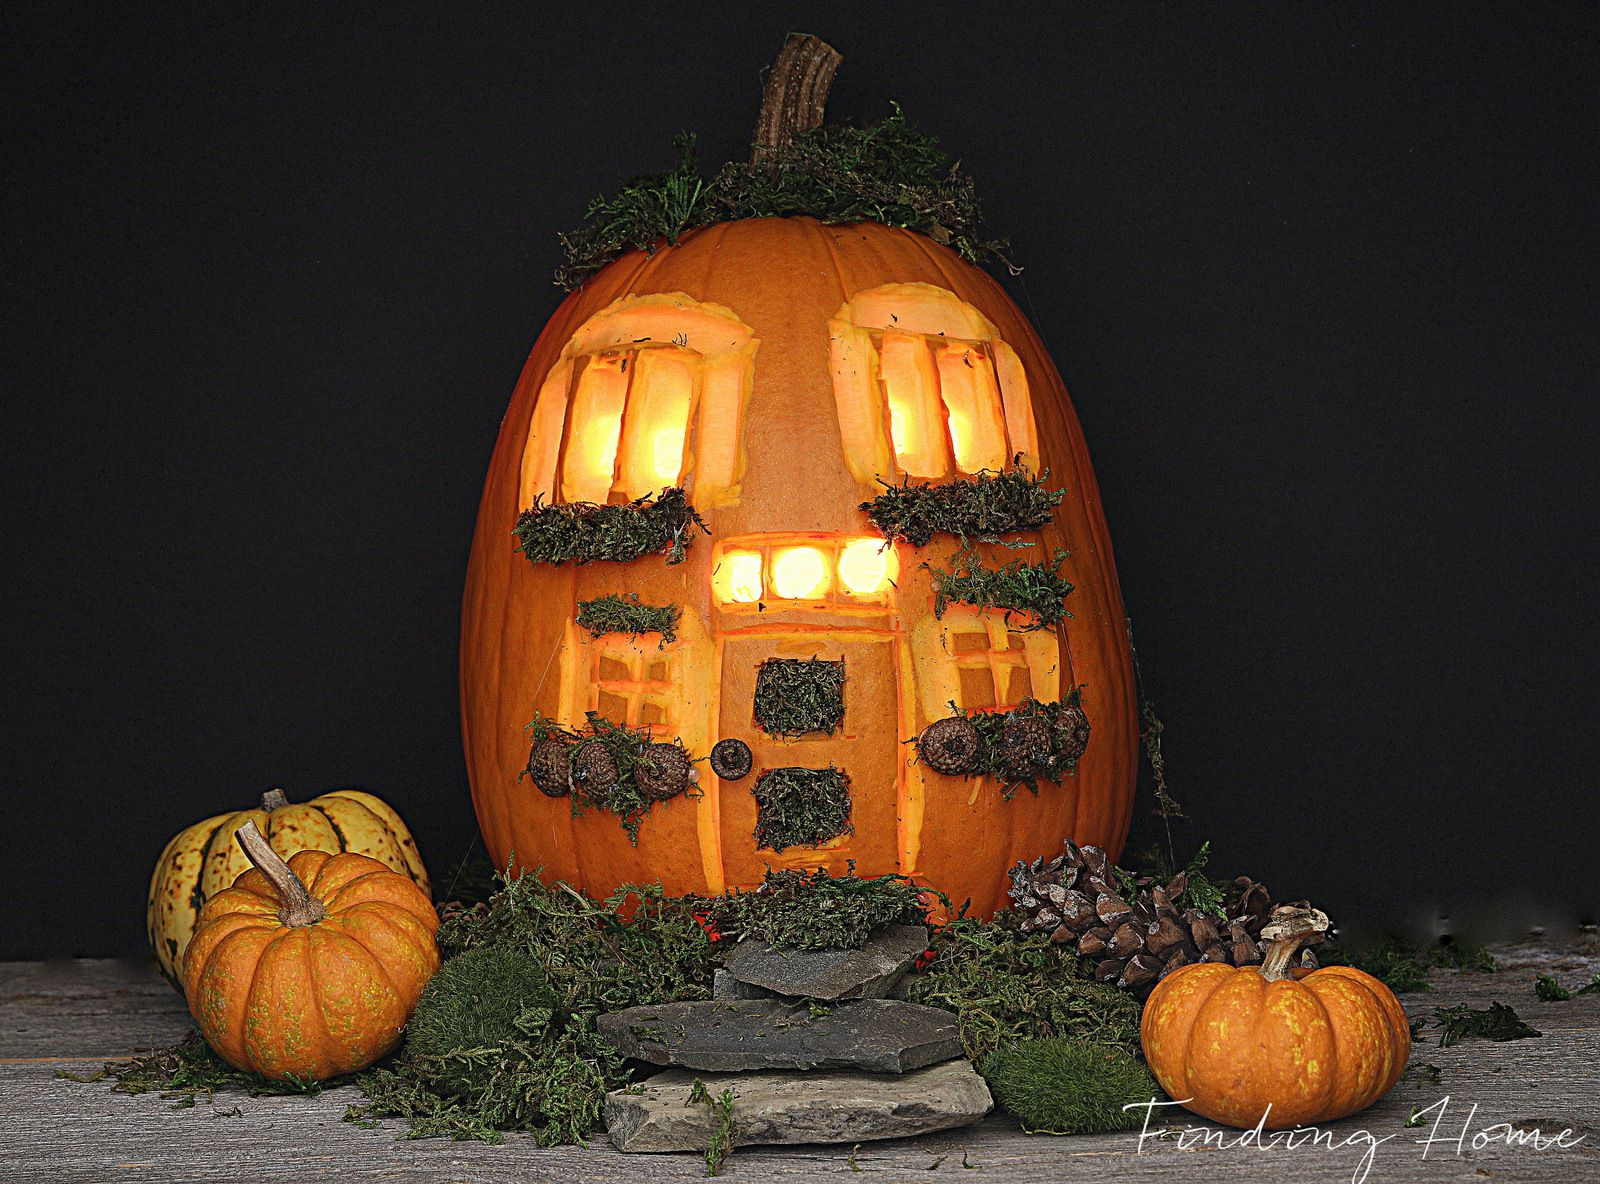 a pumpkin carving of a house